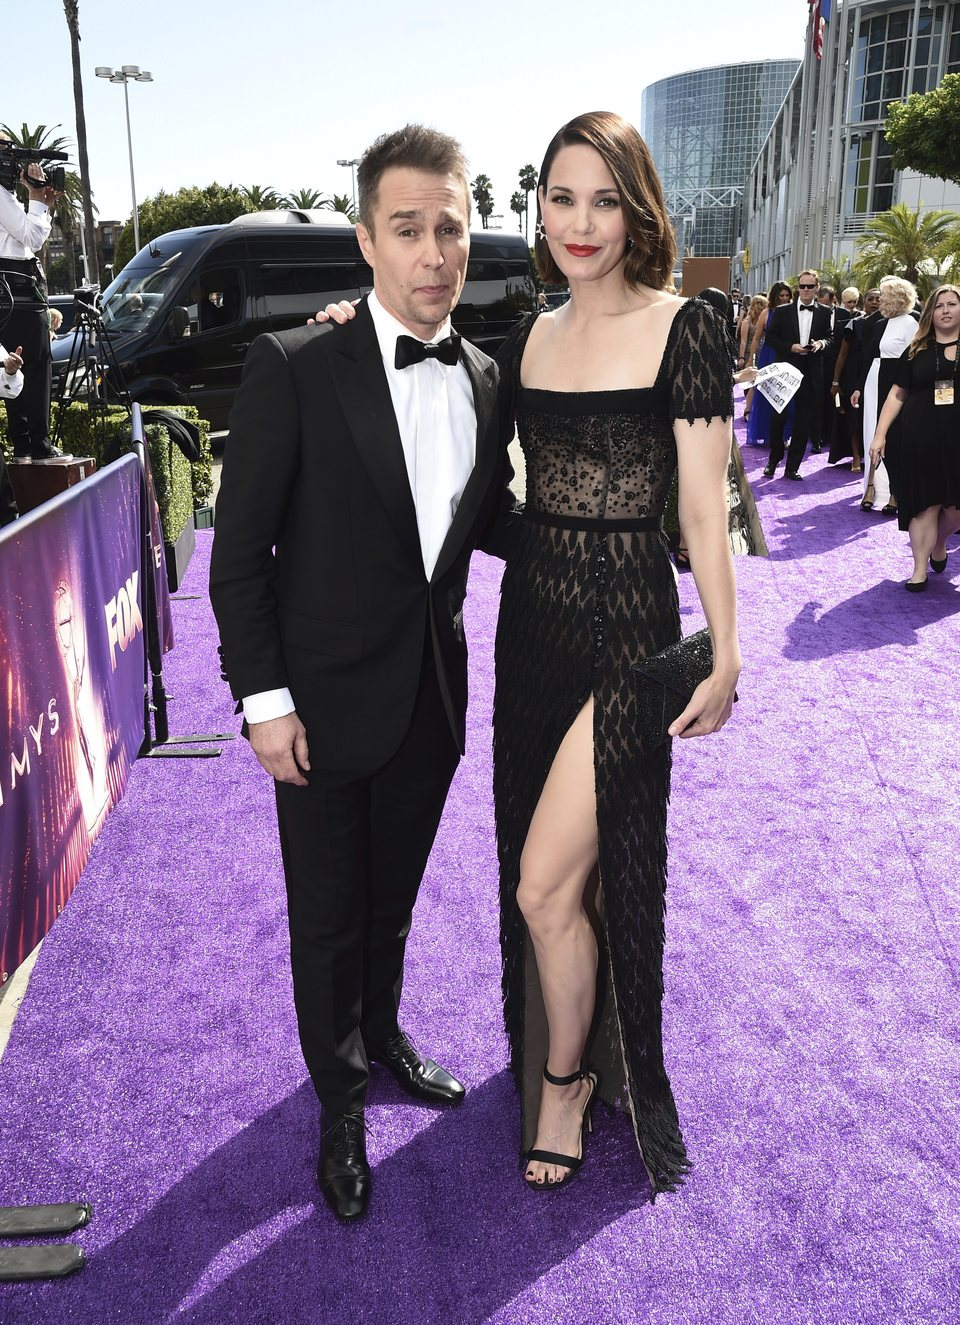 Sam Rockwell and Leslie Bibb at the Emmy 2019 red carpet